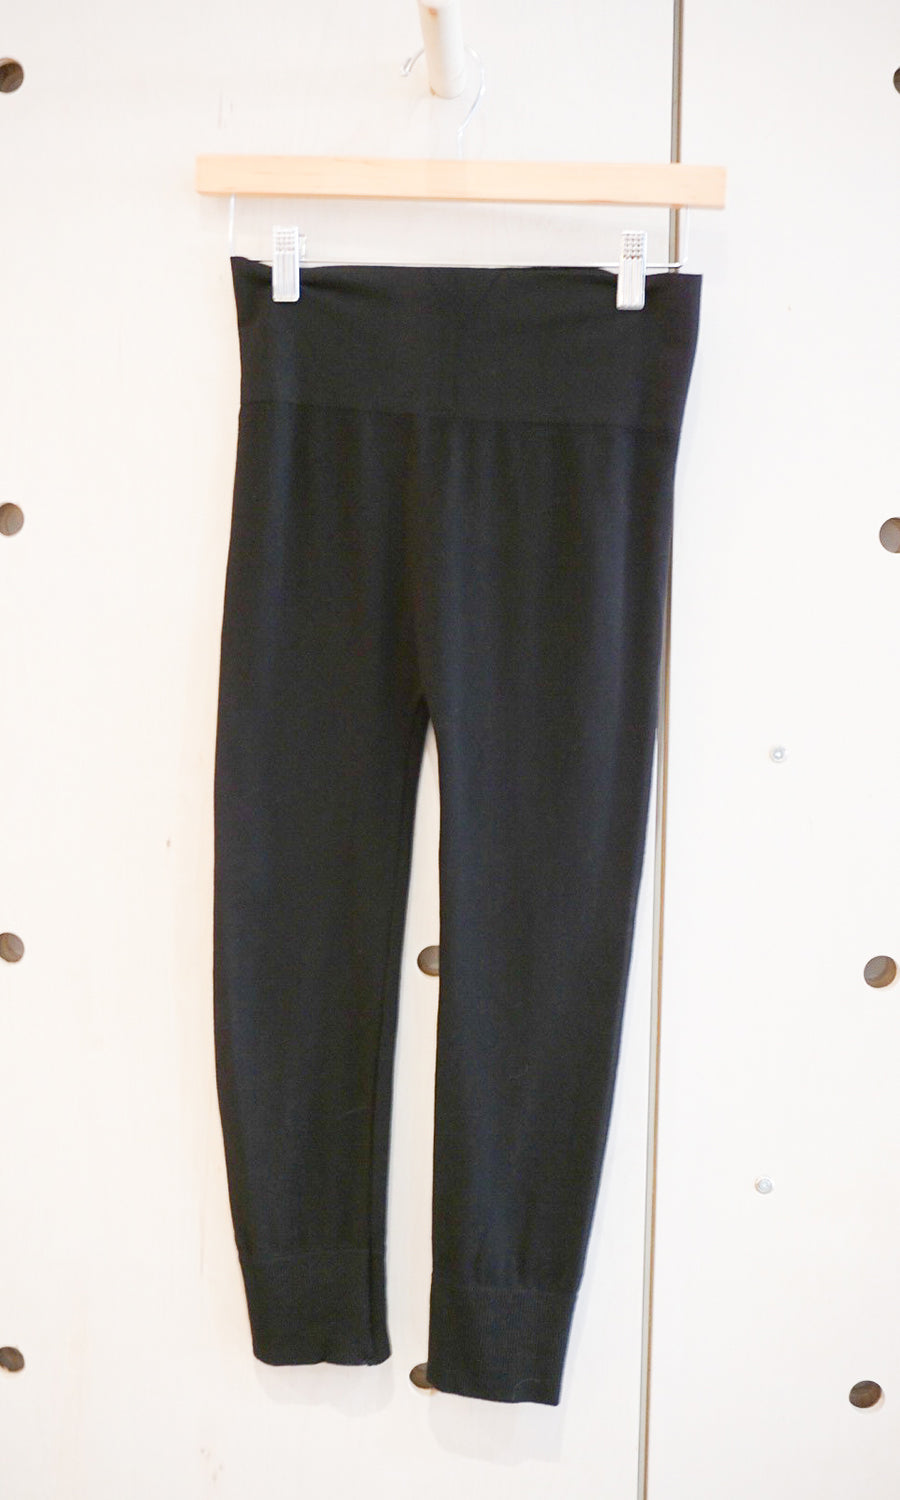 3/4 Bamboo High Waisted Leggings